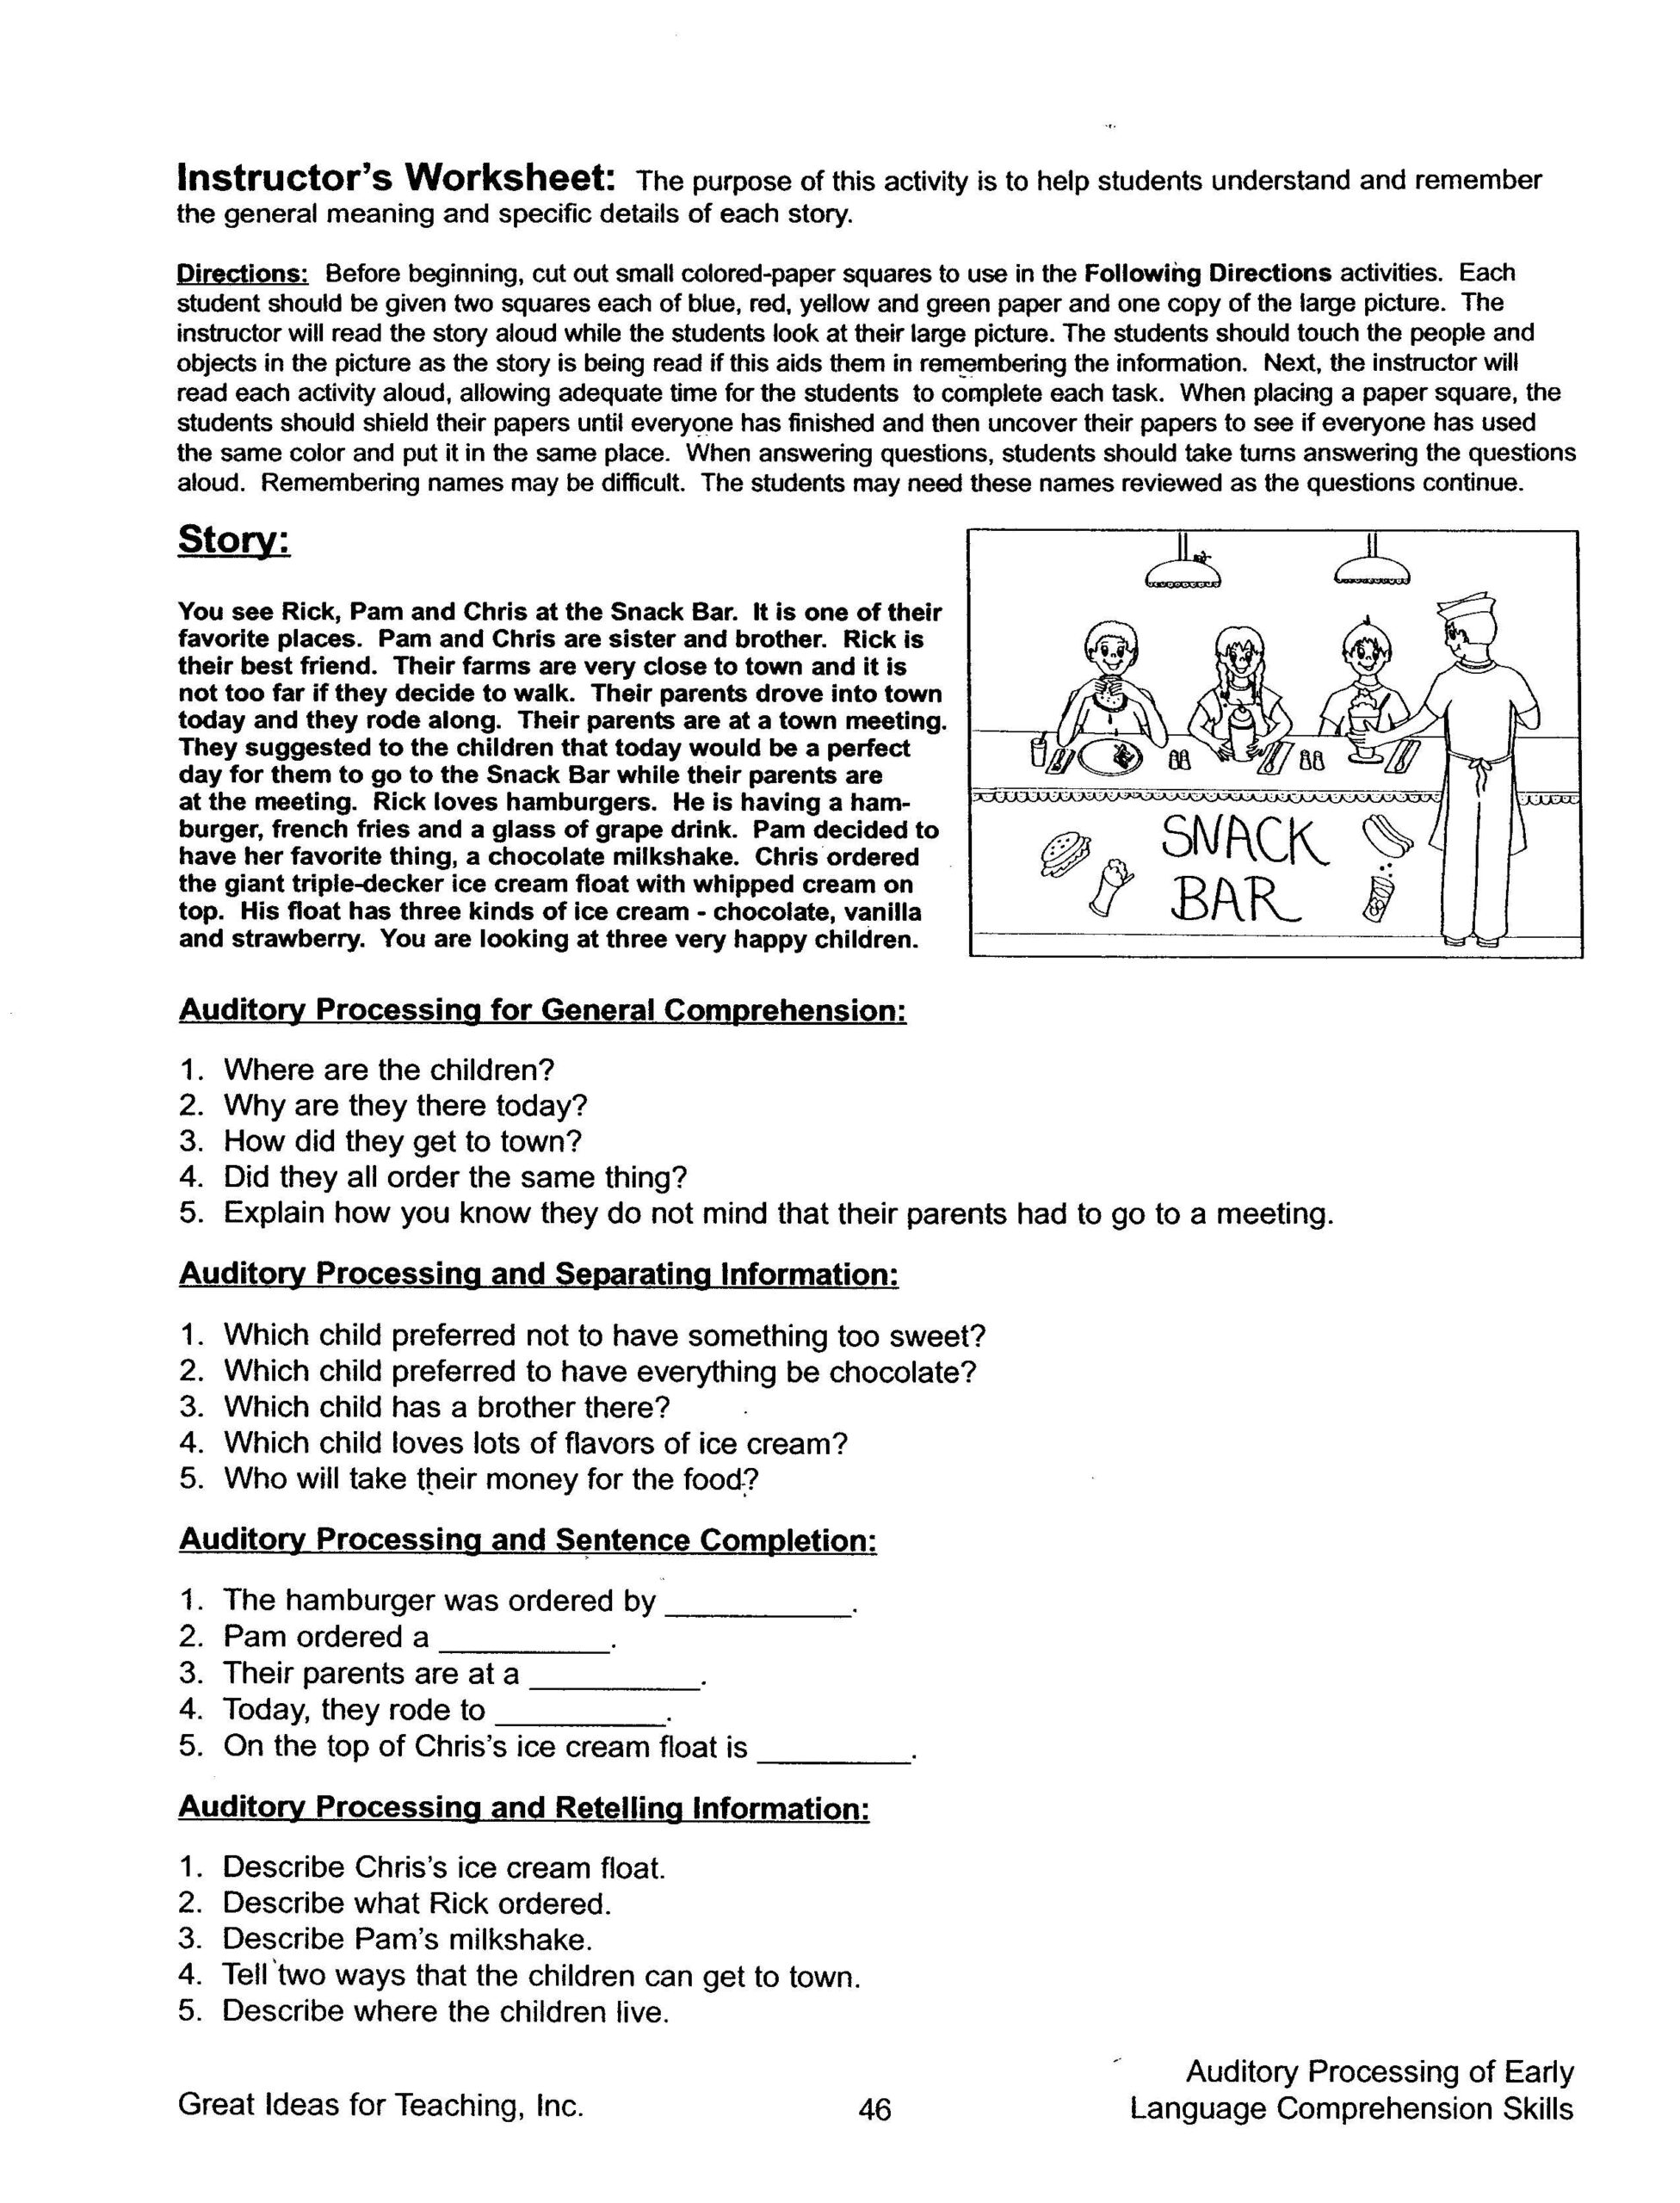 Auditory Processing Of Early Language Comprehension Skills